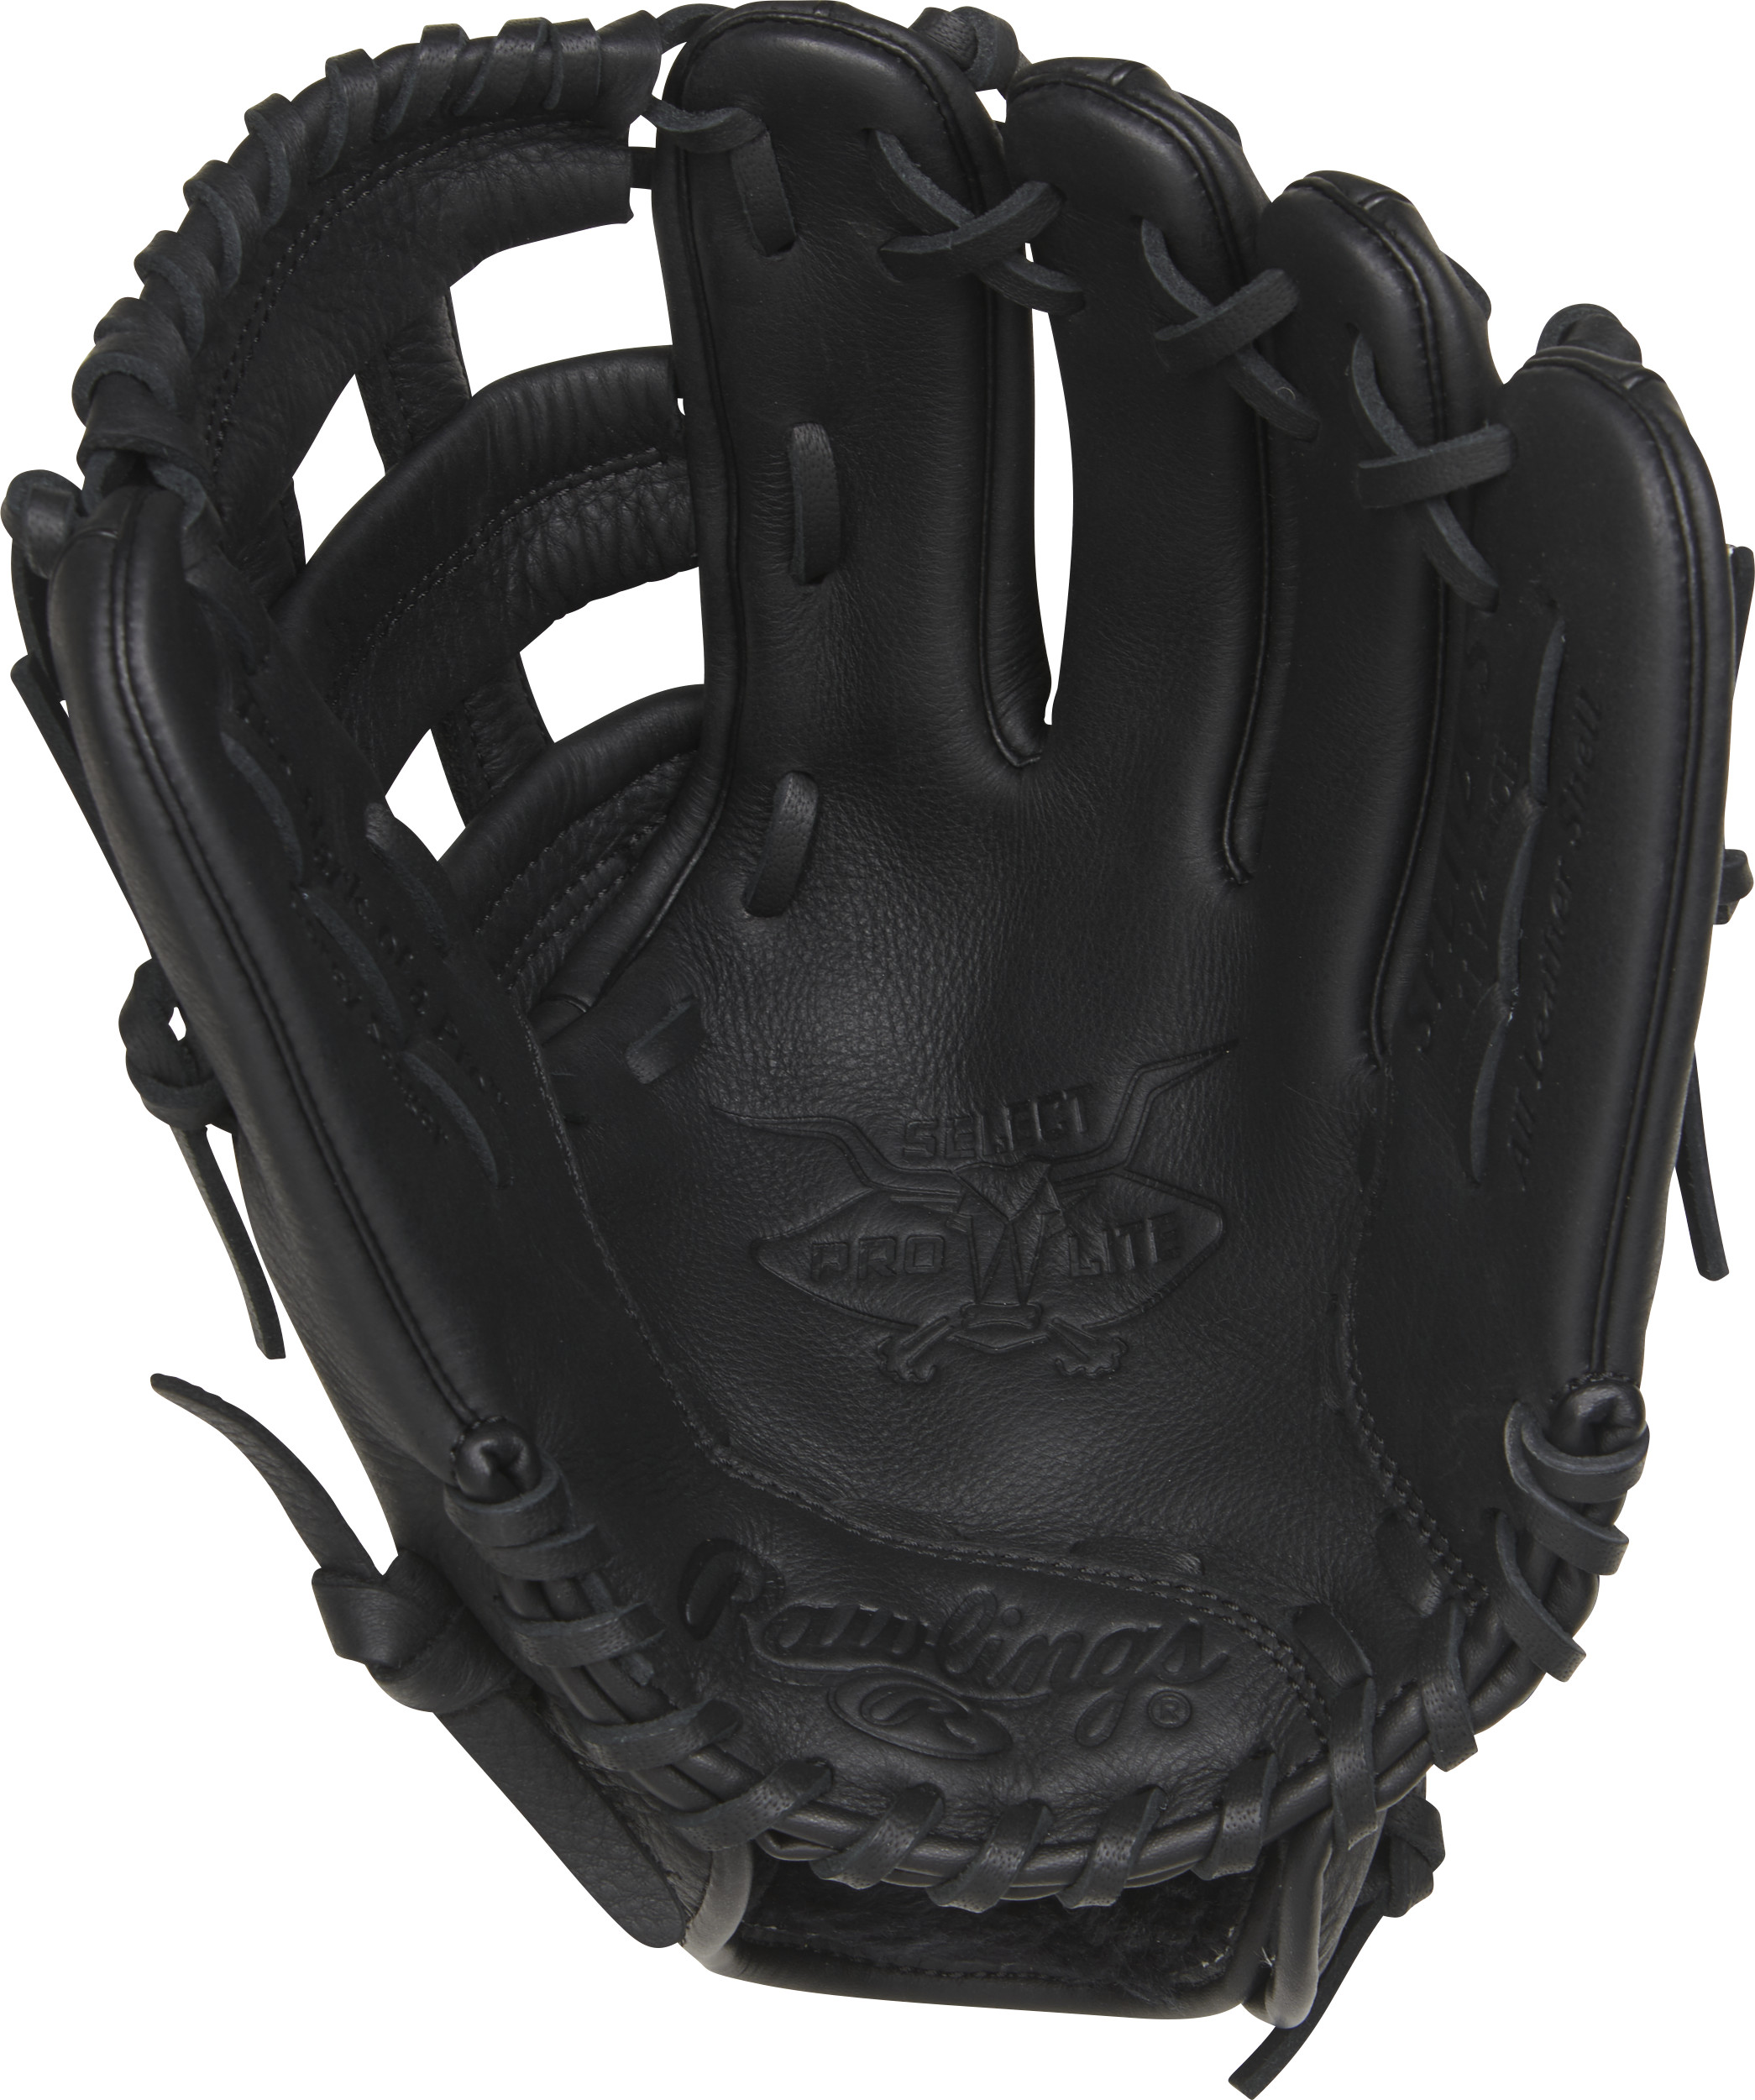 http://www.bestbatdeals.com/images/gloves/rawlings/SPL112CS-1.jpg